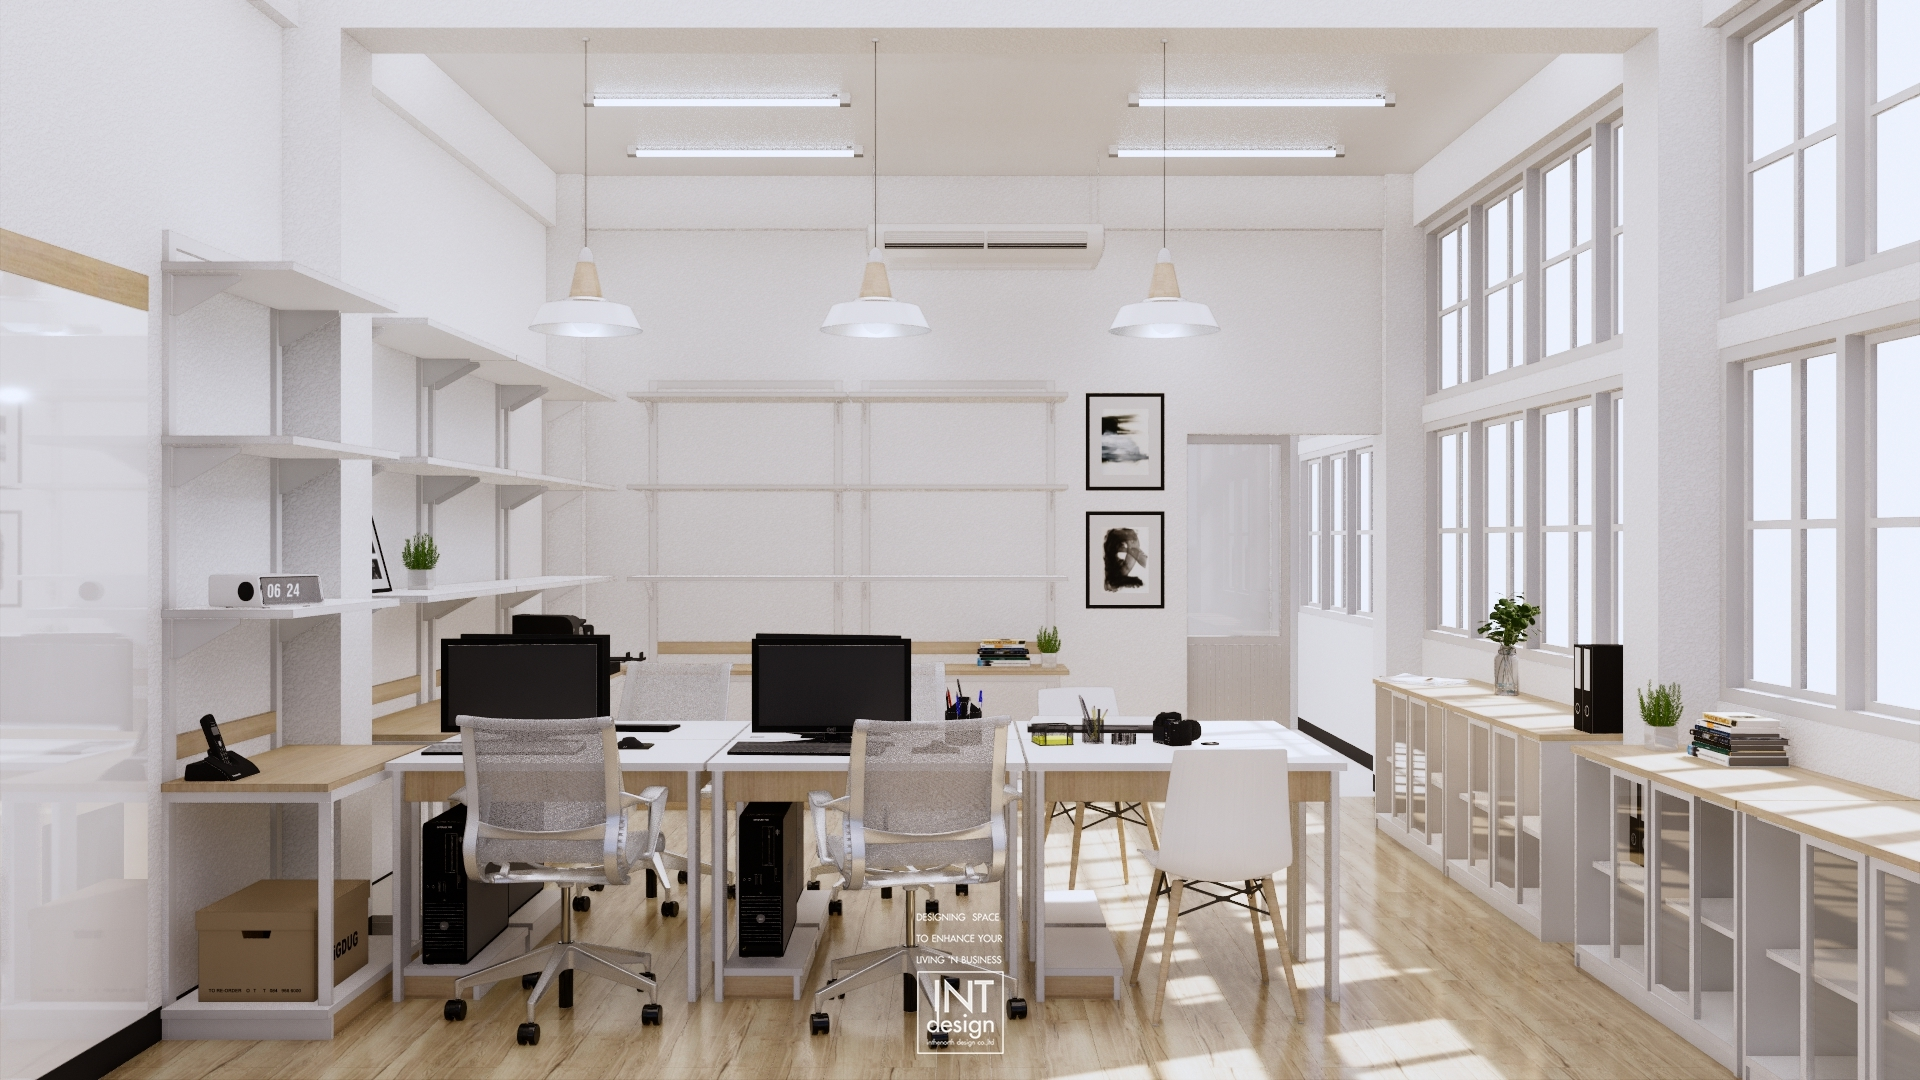 Inthenorth Design Workplace design